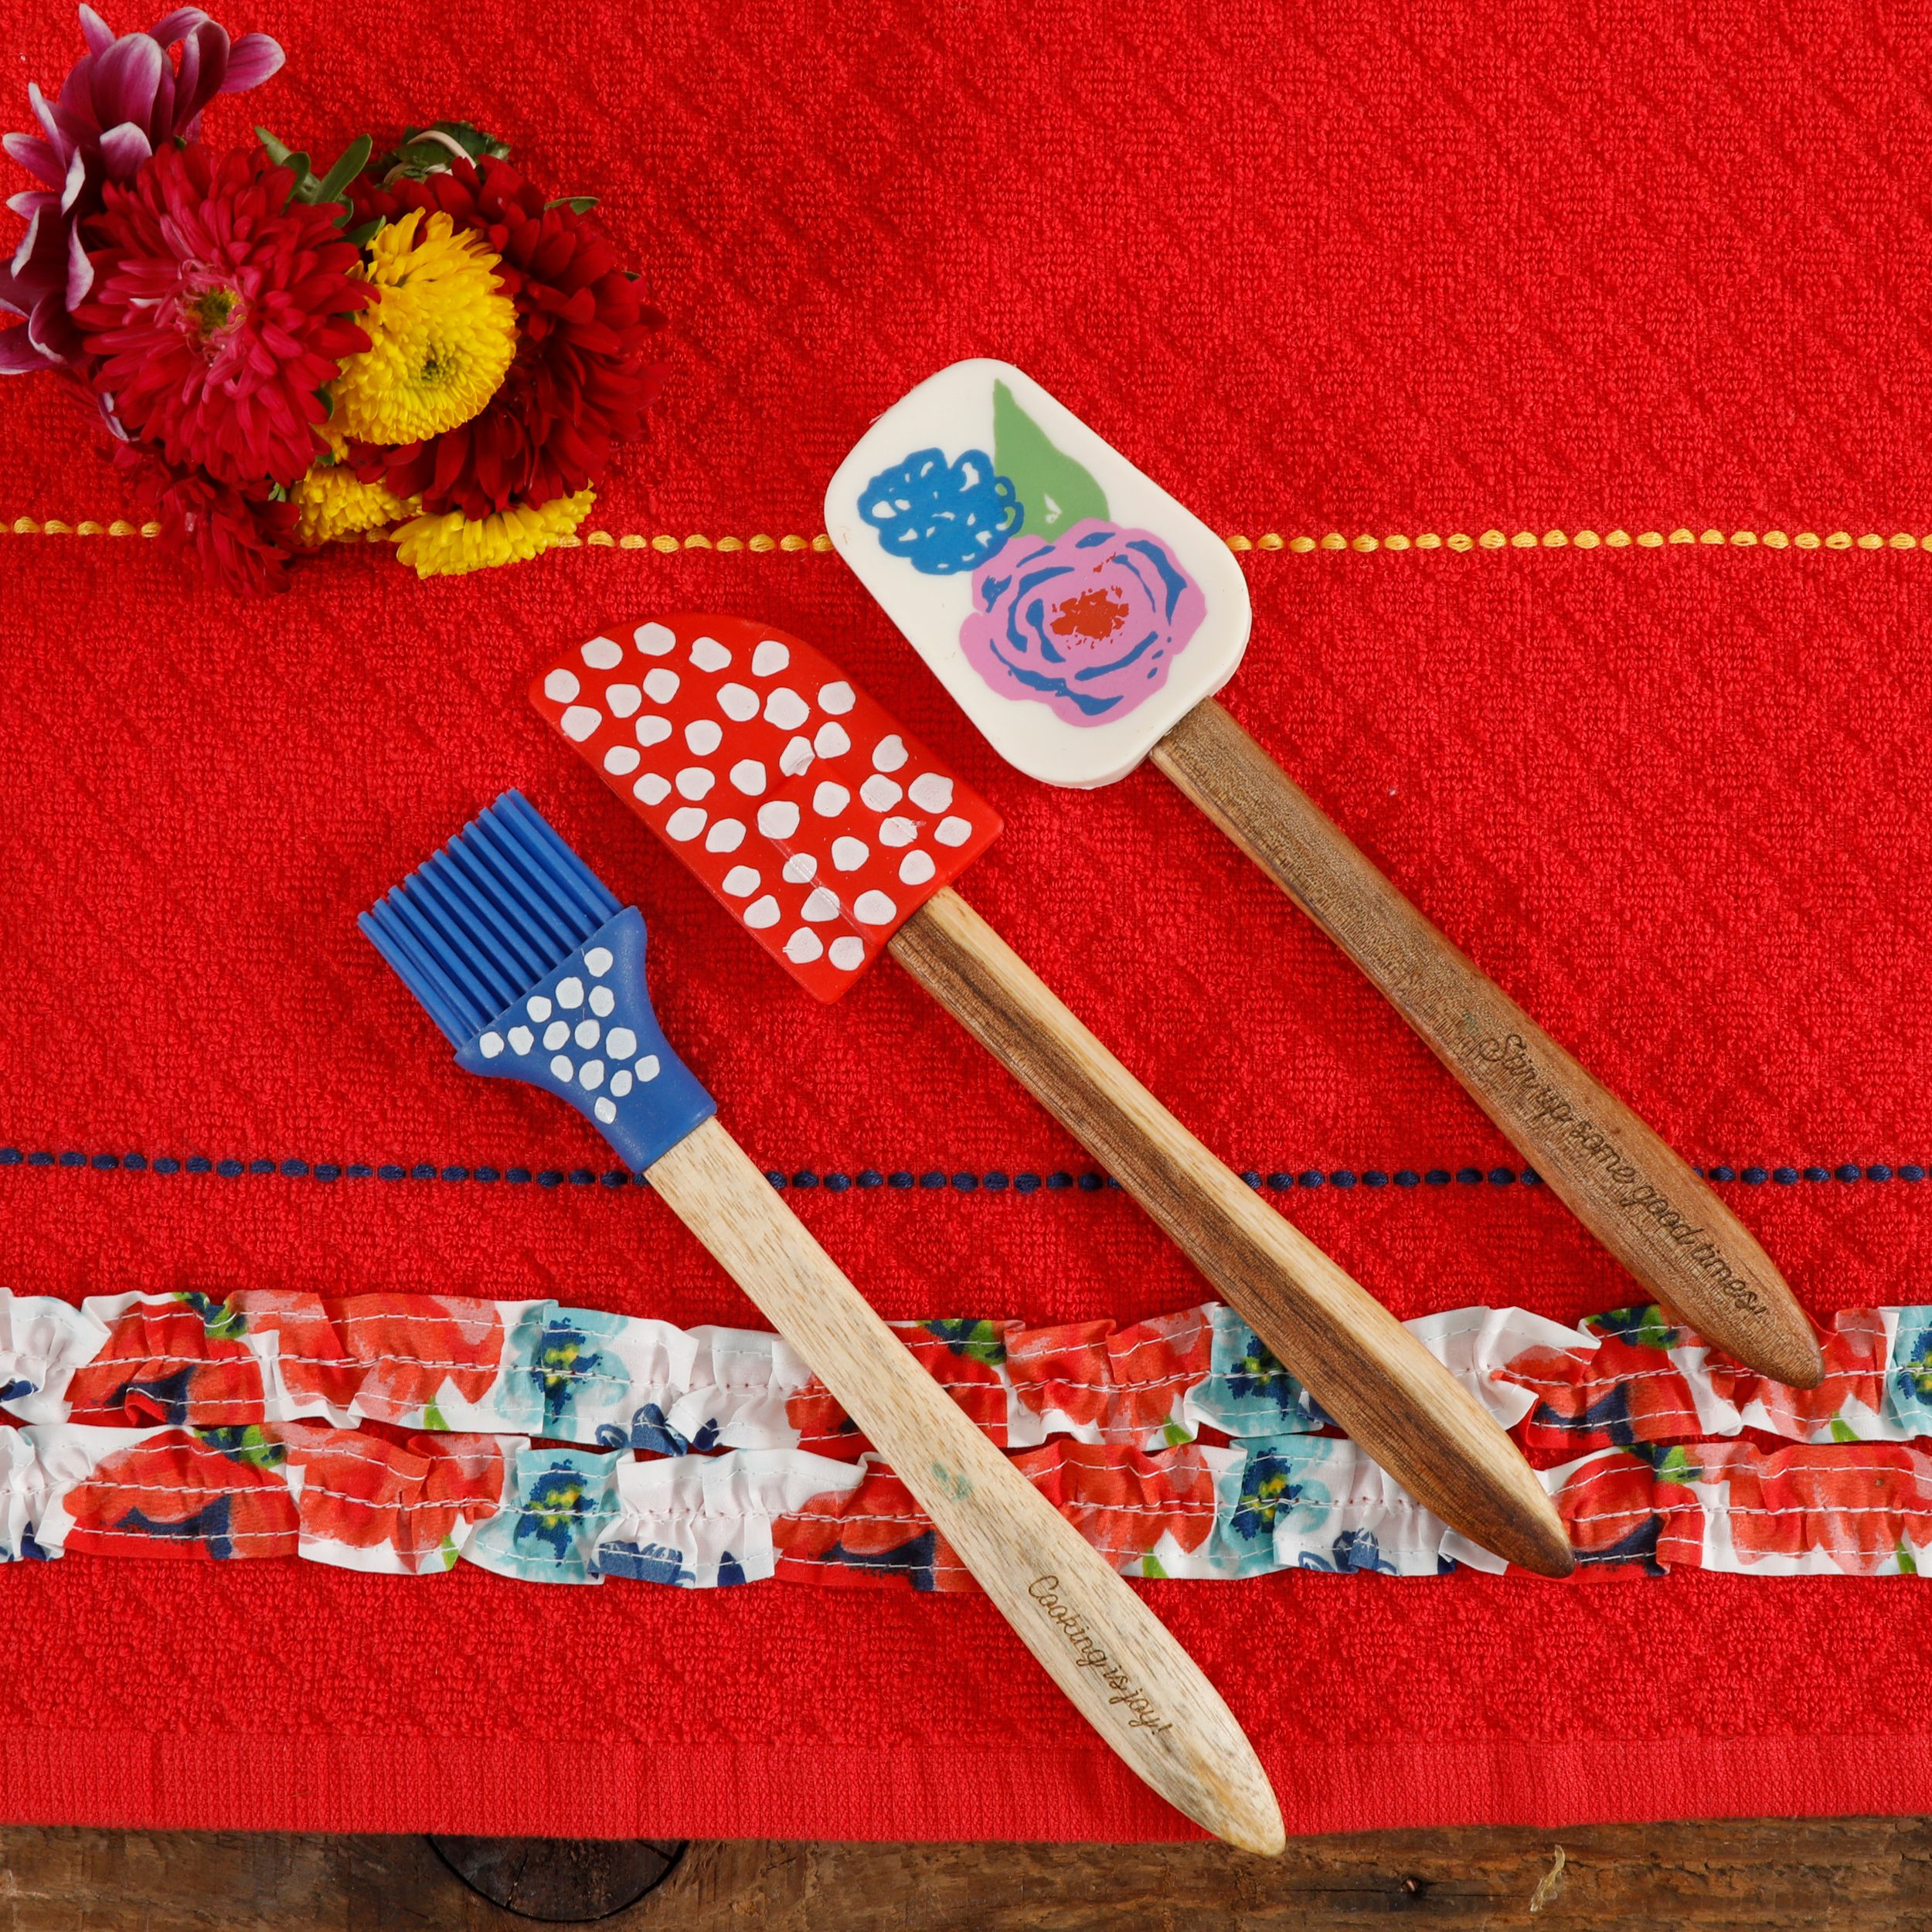 The Pioneer Woman Spring Mini Silicone Tool Set, 3 Piece